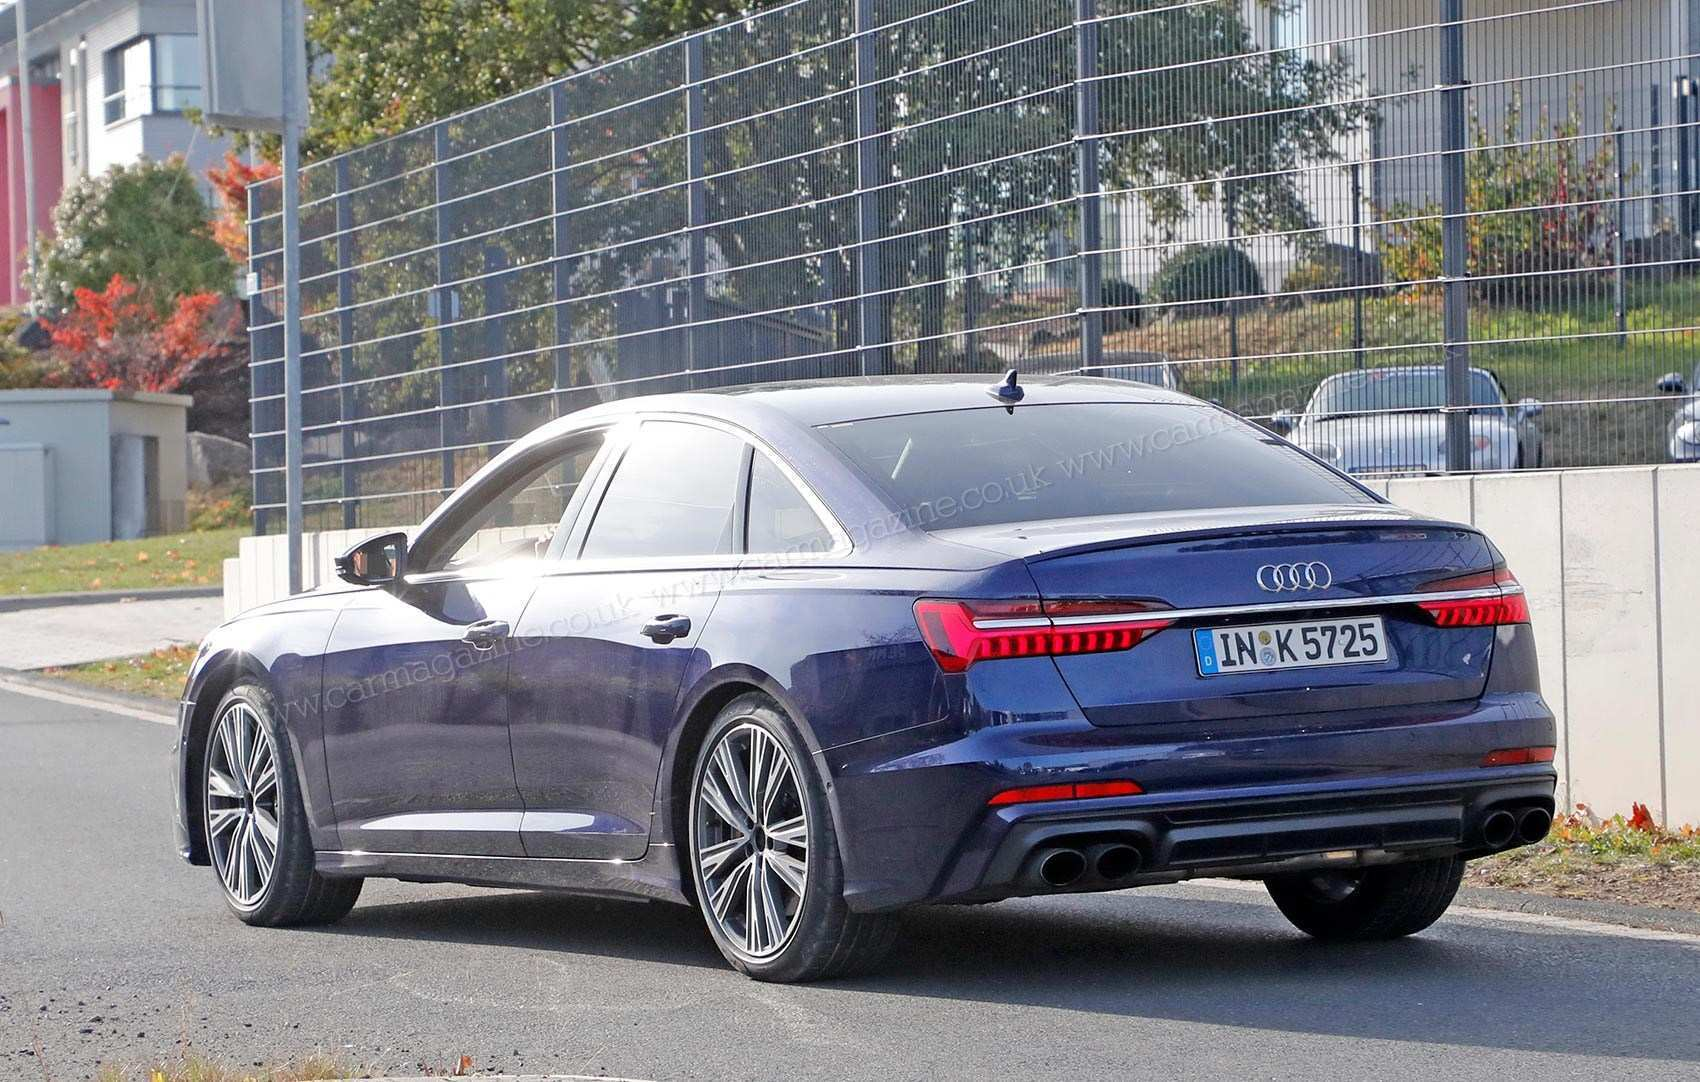 92 New 2019 Audi S6 Images